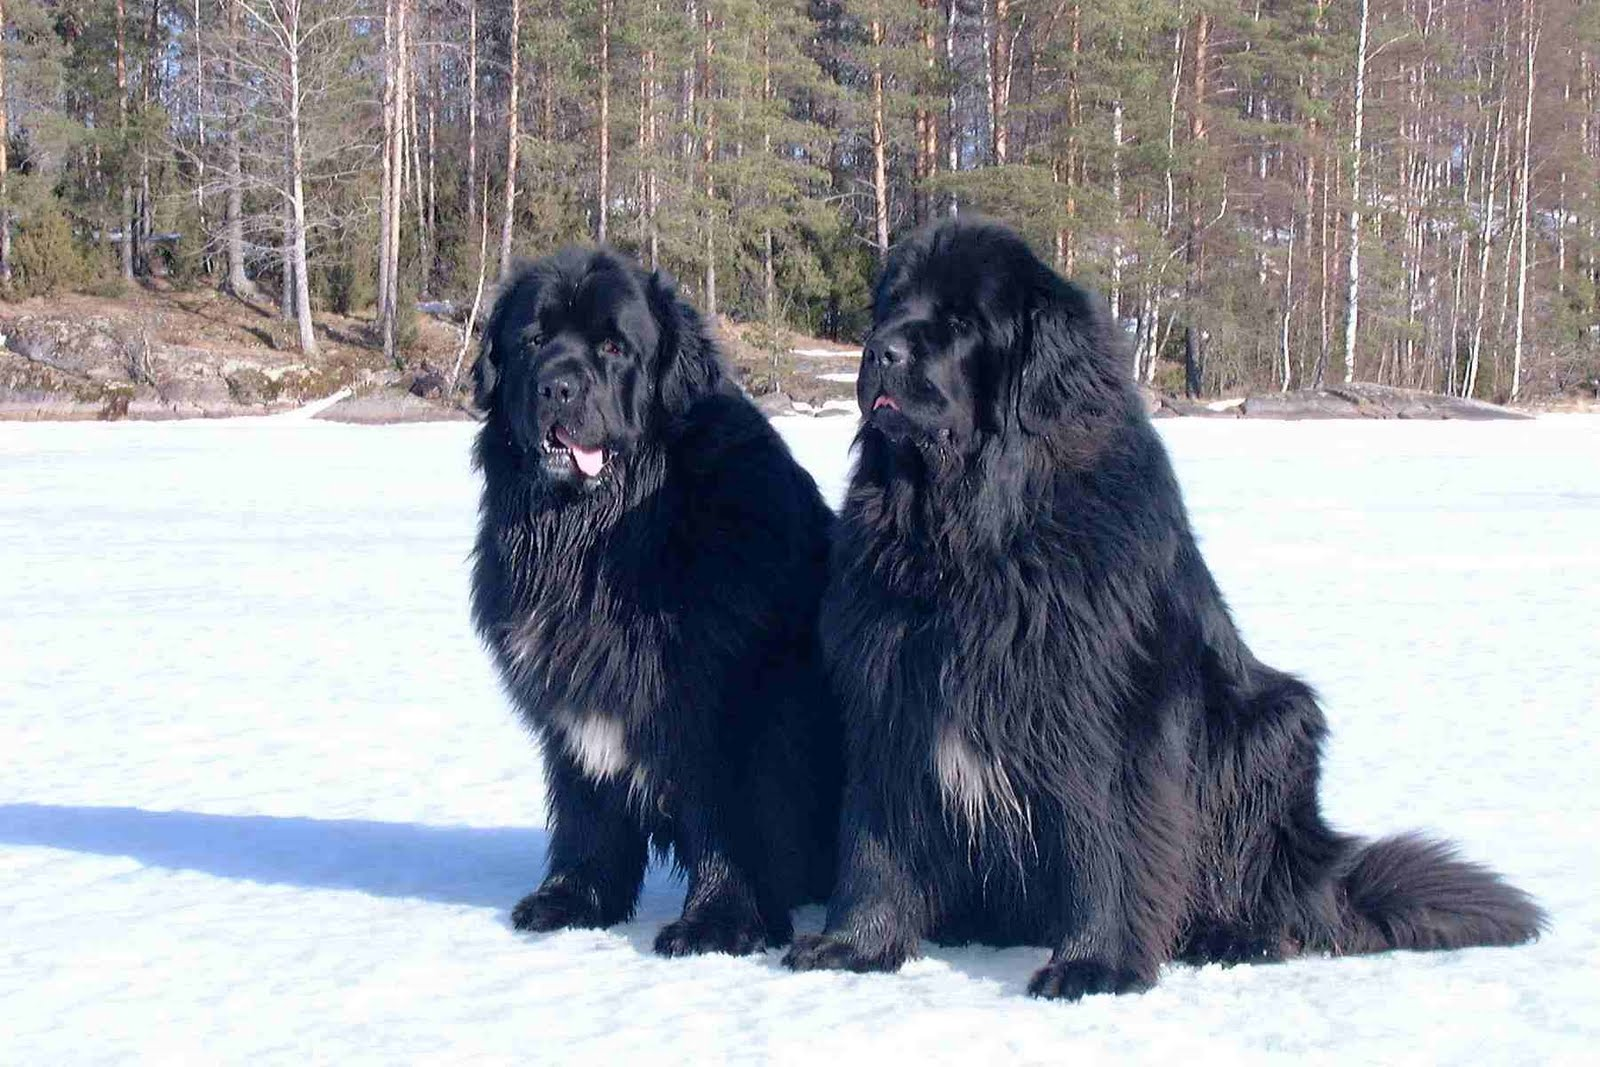 Two huge Newfoundland dogs sitting on the snow, longhaired massive dogs